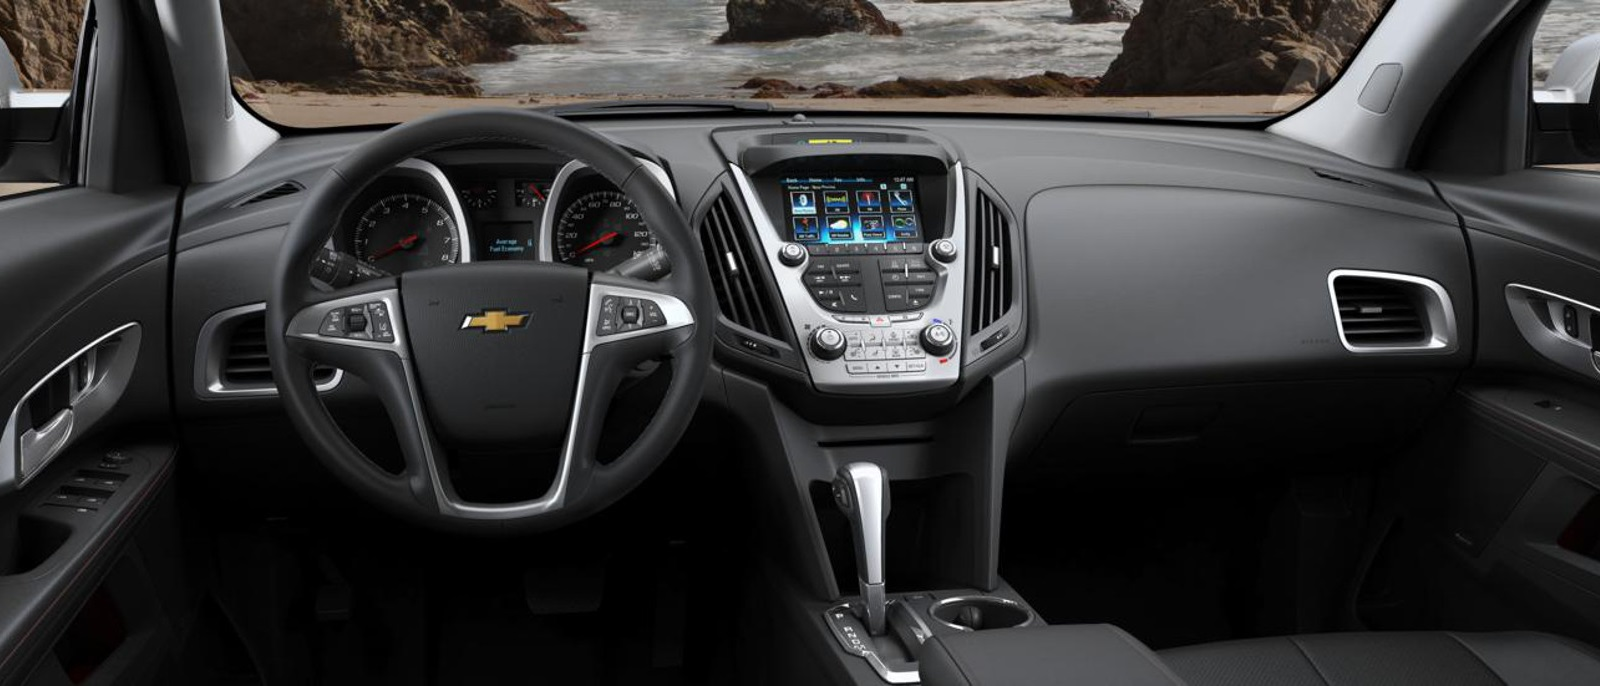 chevy equinox miles per gallon autos post. Black Bedroom Furniture Sets. Home Design Ideas